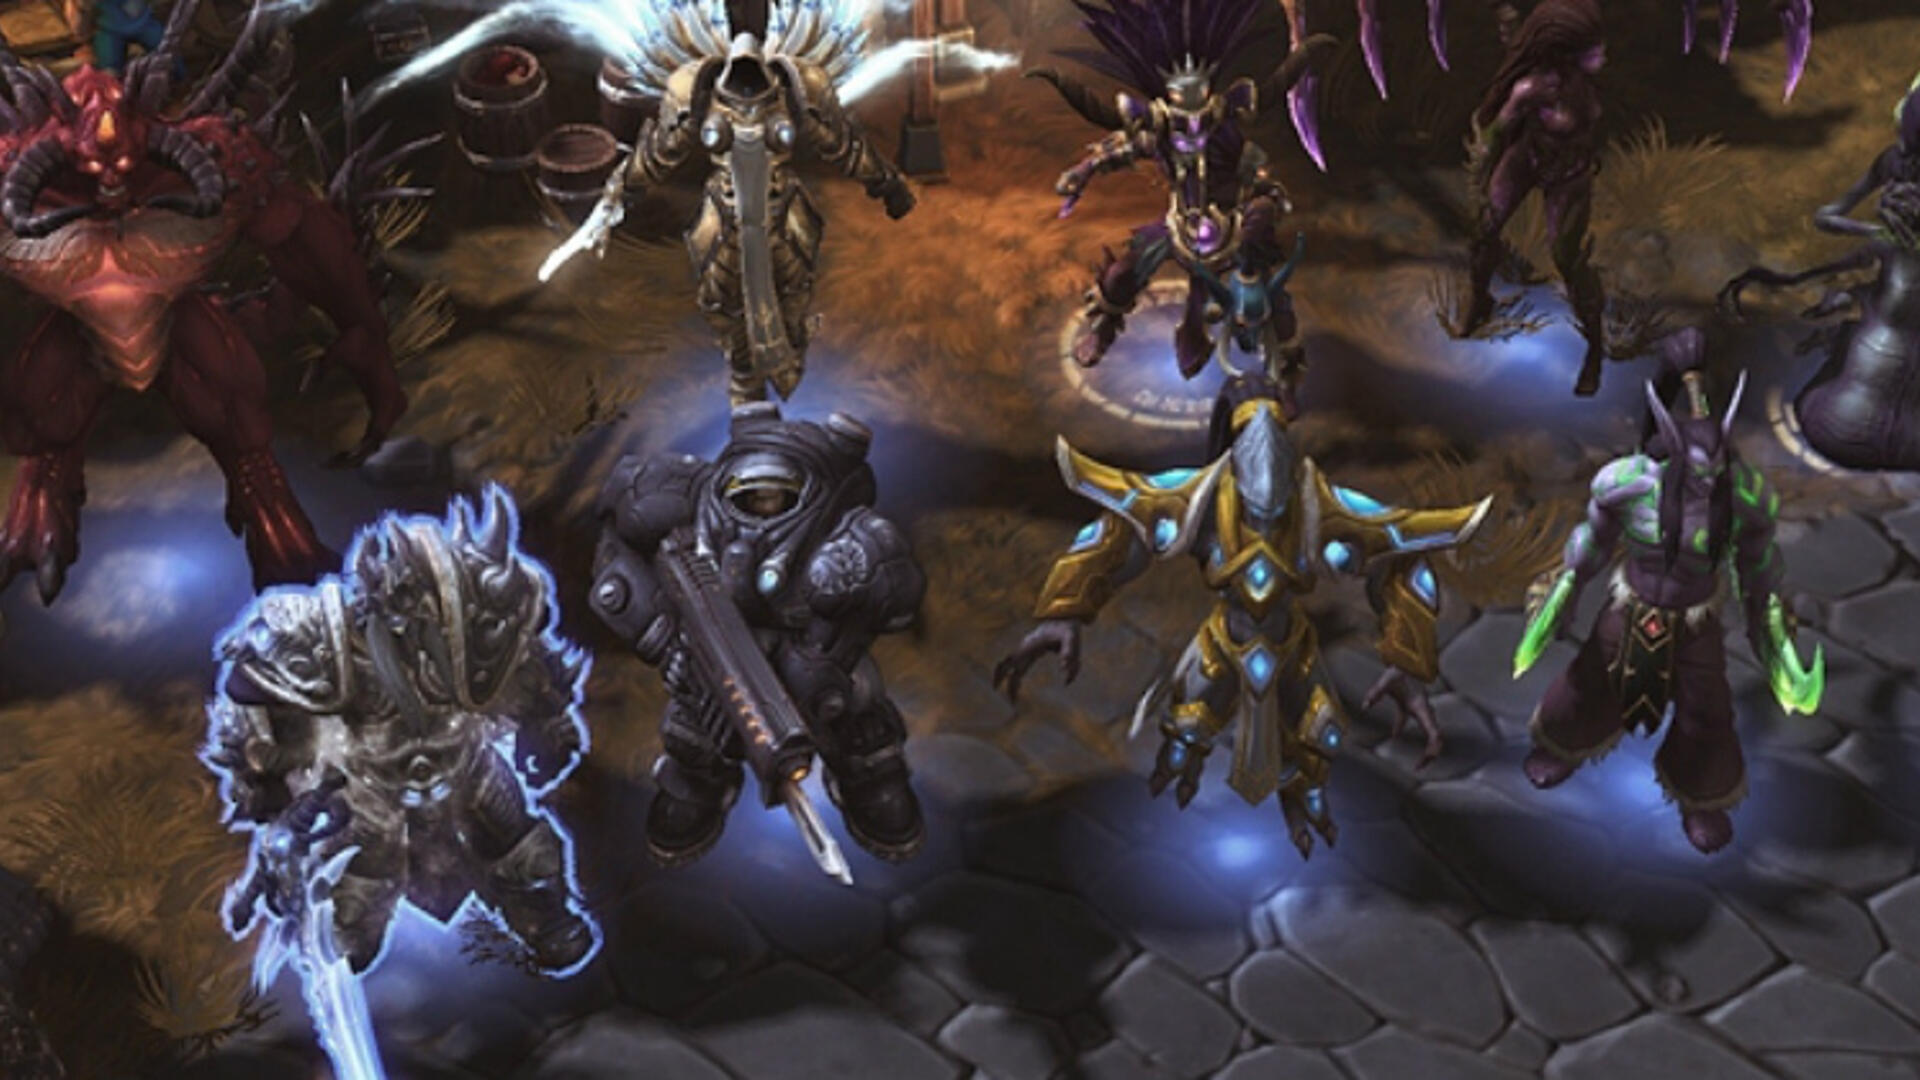 Blizzard Reportedly Cutting Costs as Activision's Influence on Company Grows